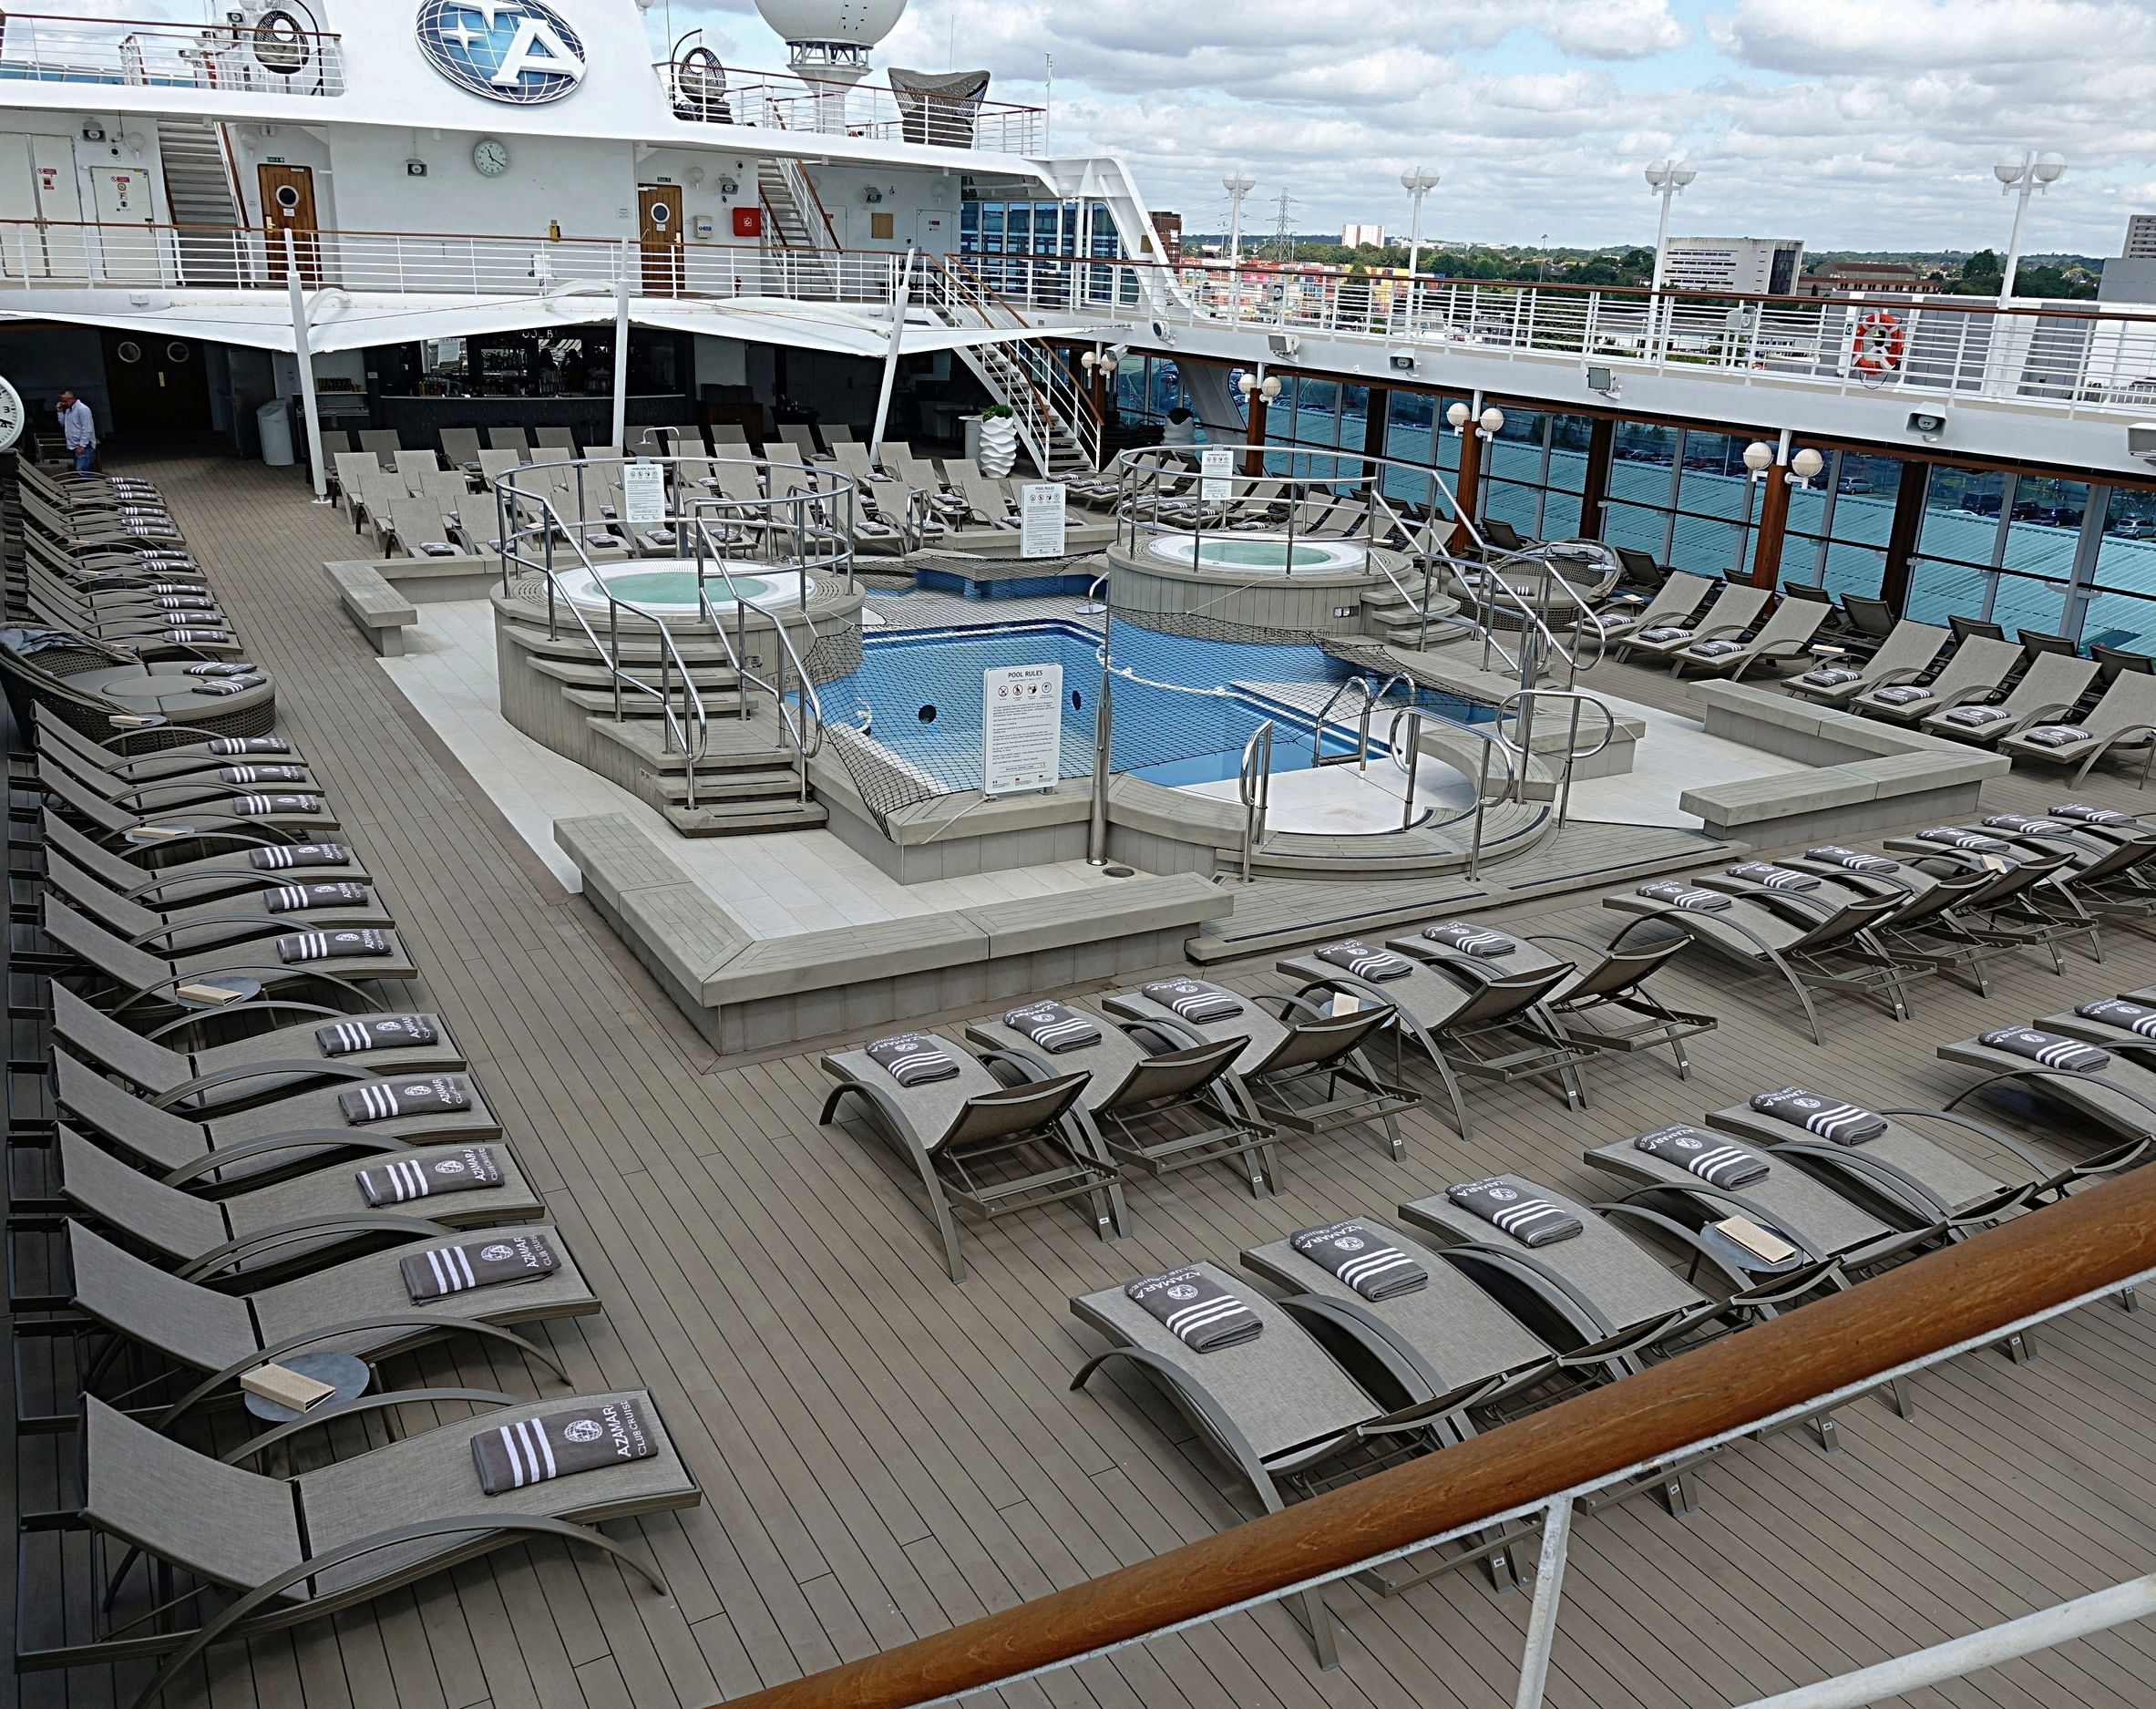 Looking down on the pool deck.